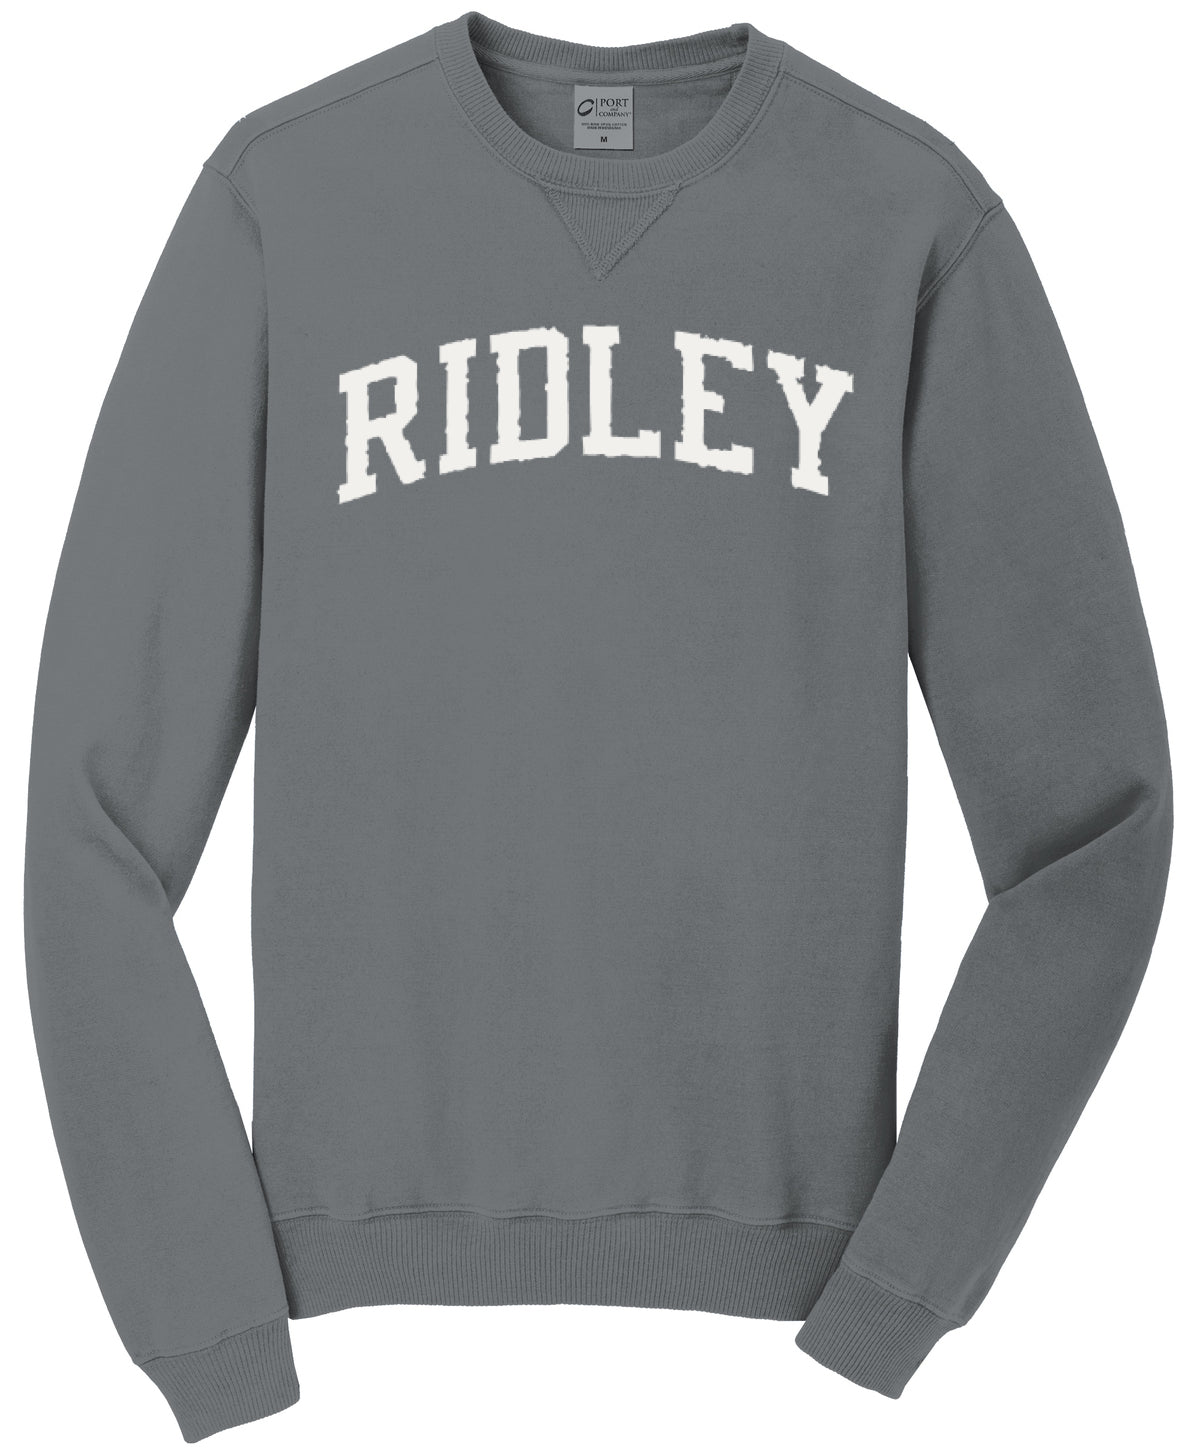 Ridley Beach Wash Crewneck Sweatshirt